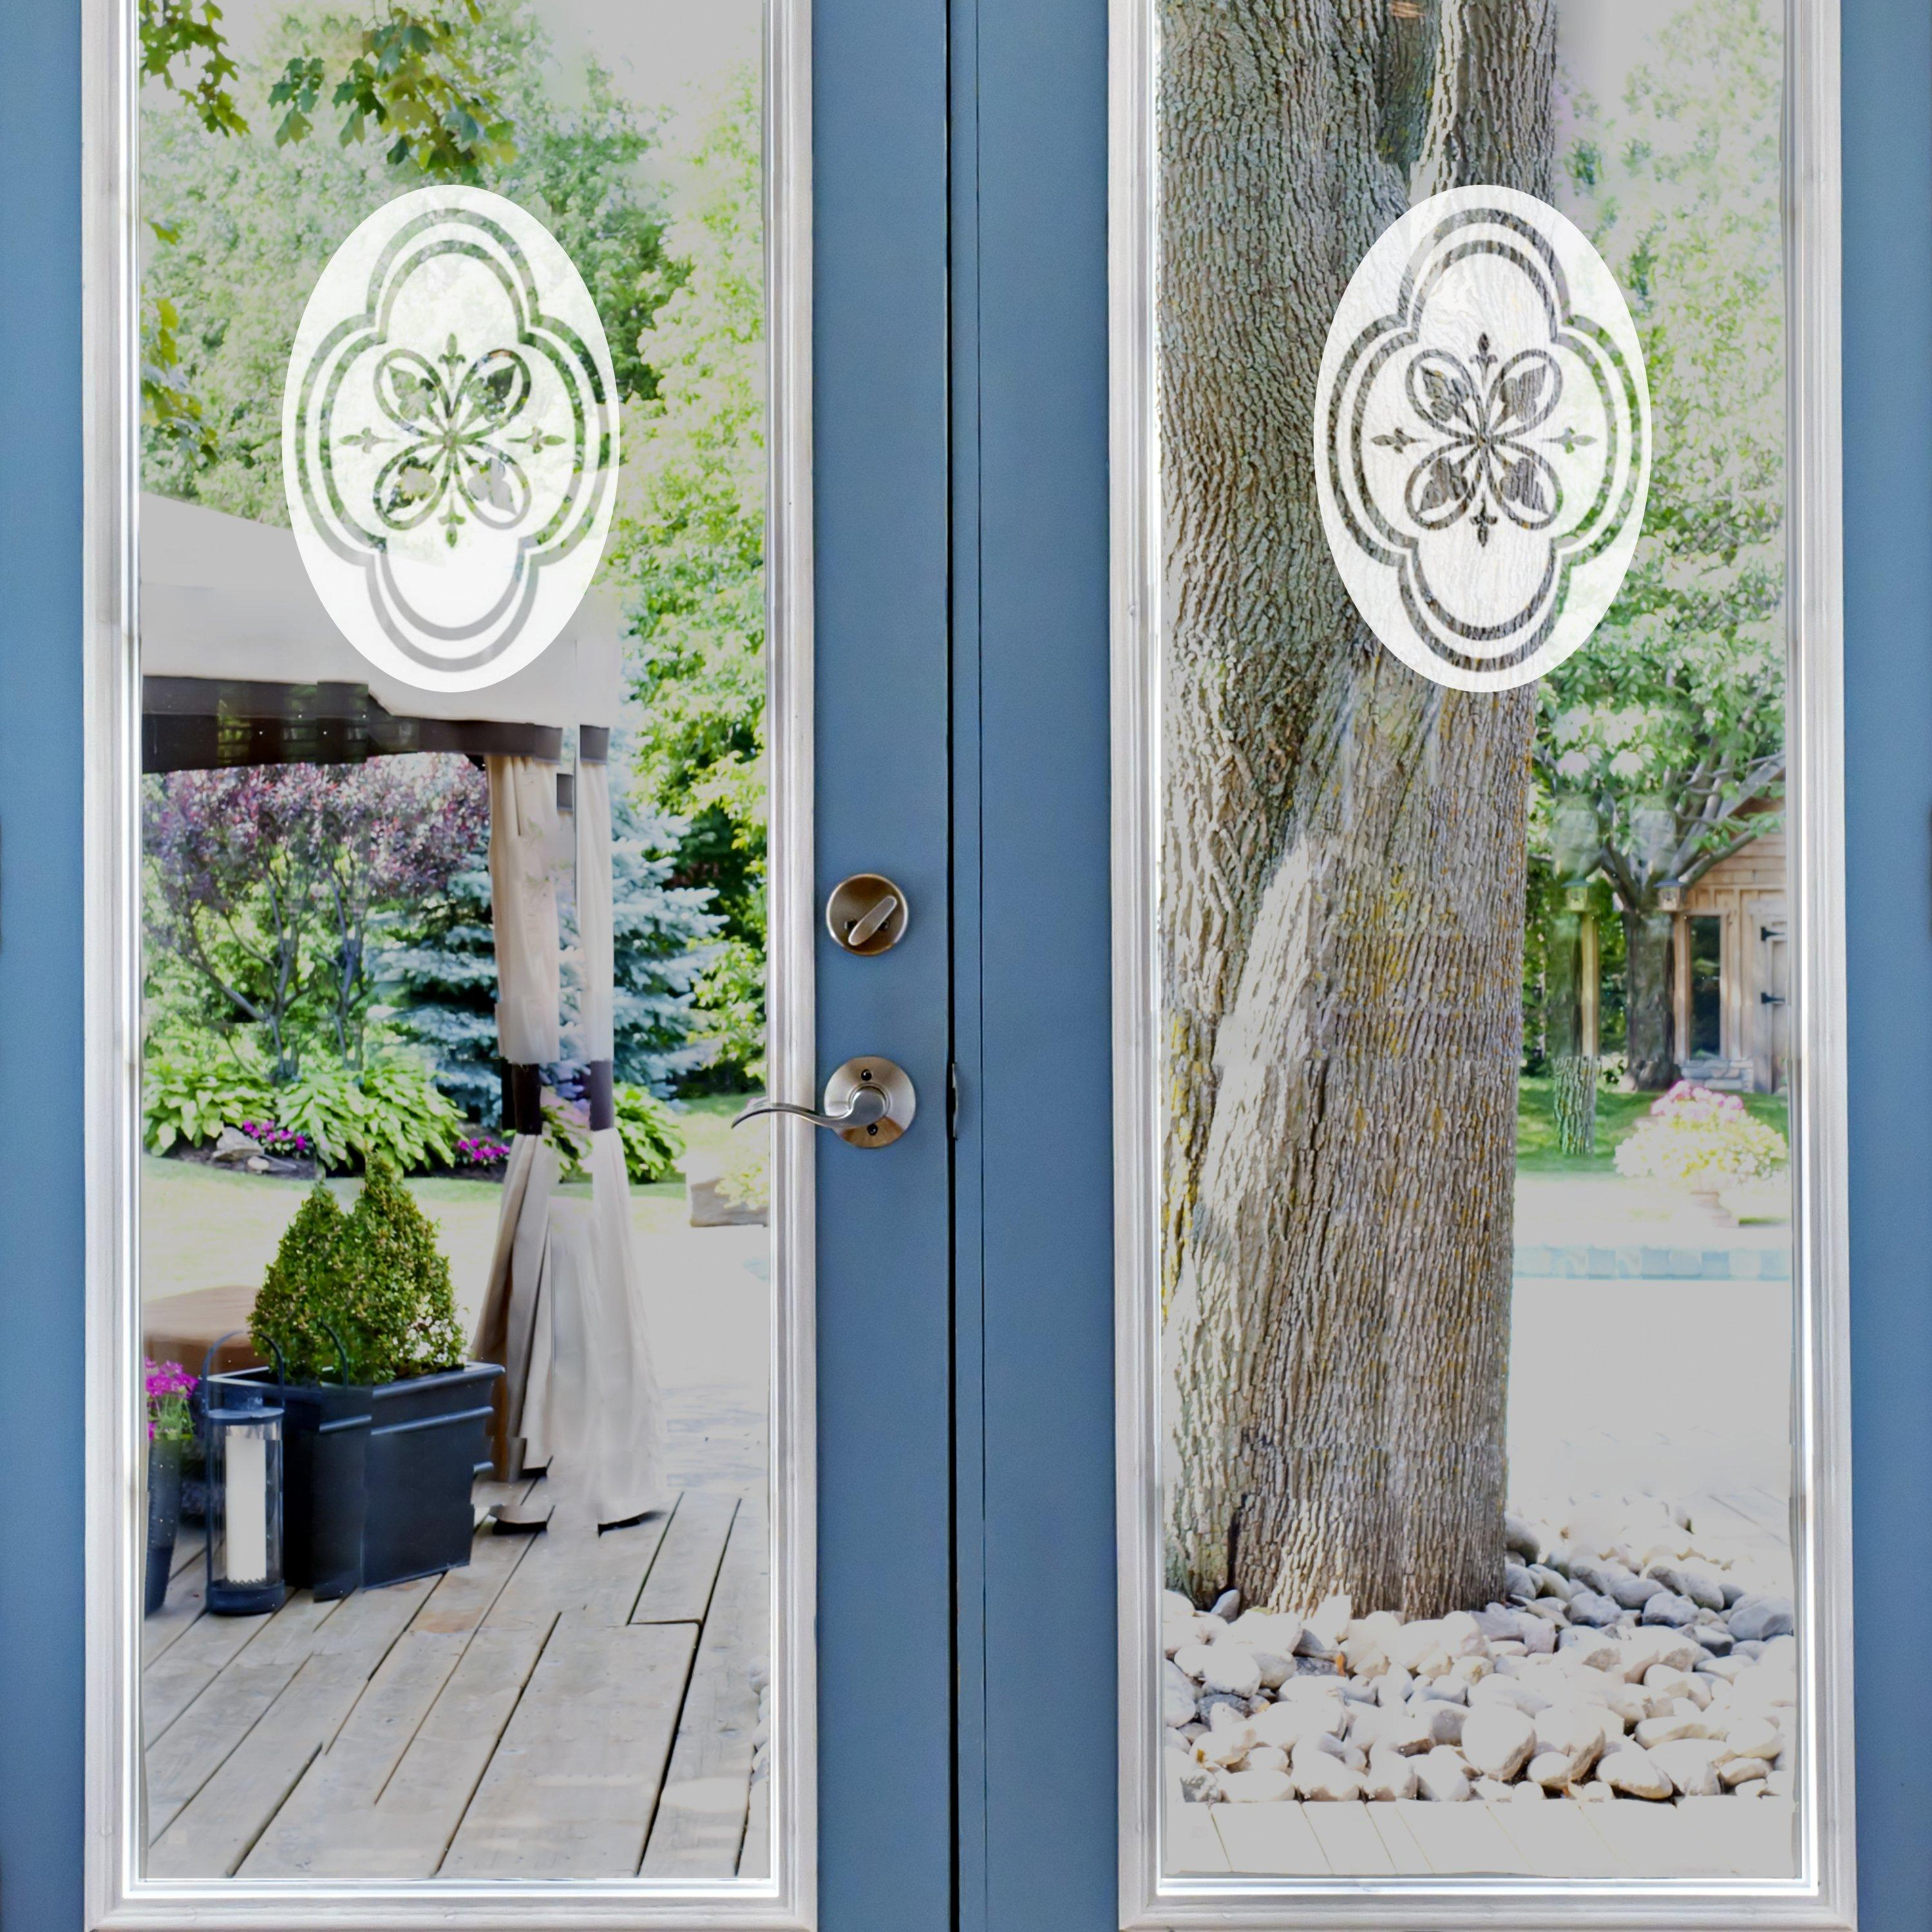 4 x 6 Oval Decorative Design Etched Window Decal Vinyl Glass Cling White with Clear Design Elements